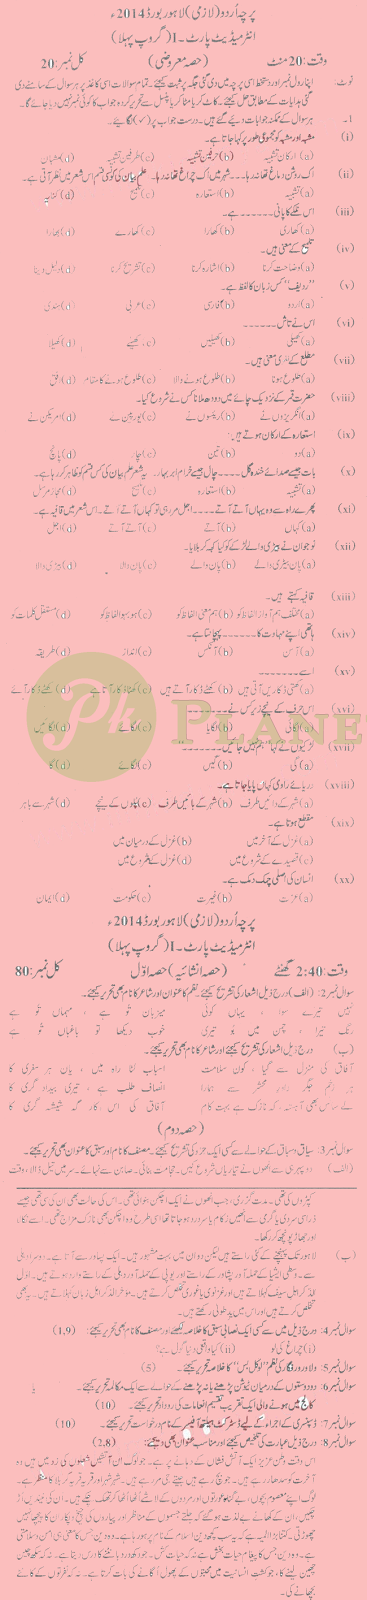 Past Papers of Urdu Inter part 1 Lahore Board 2014